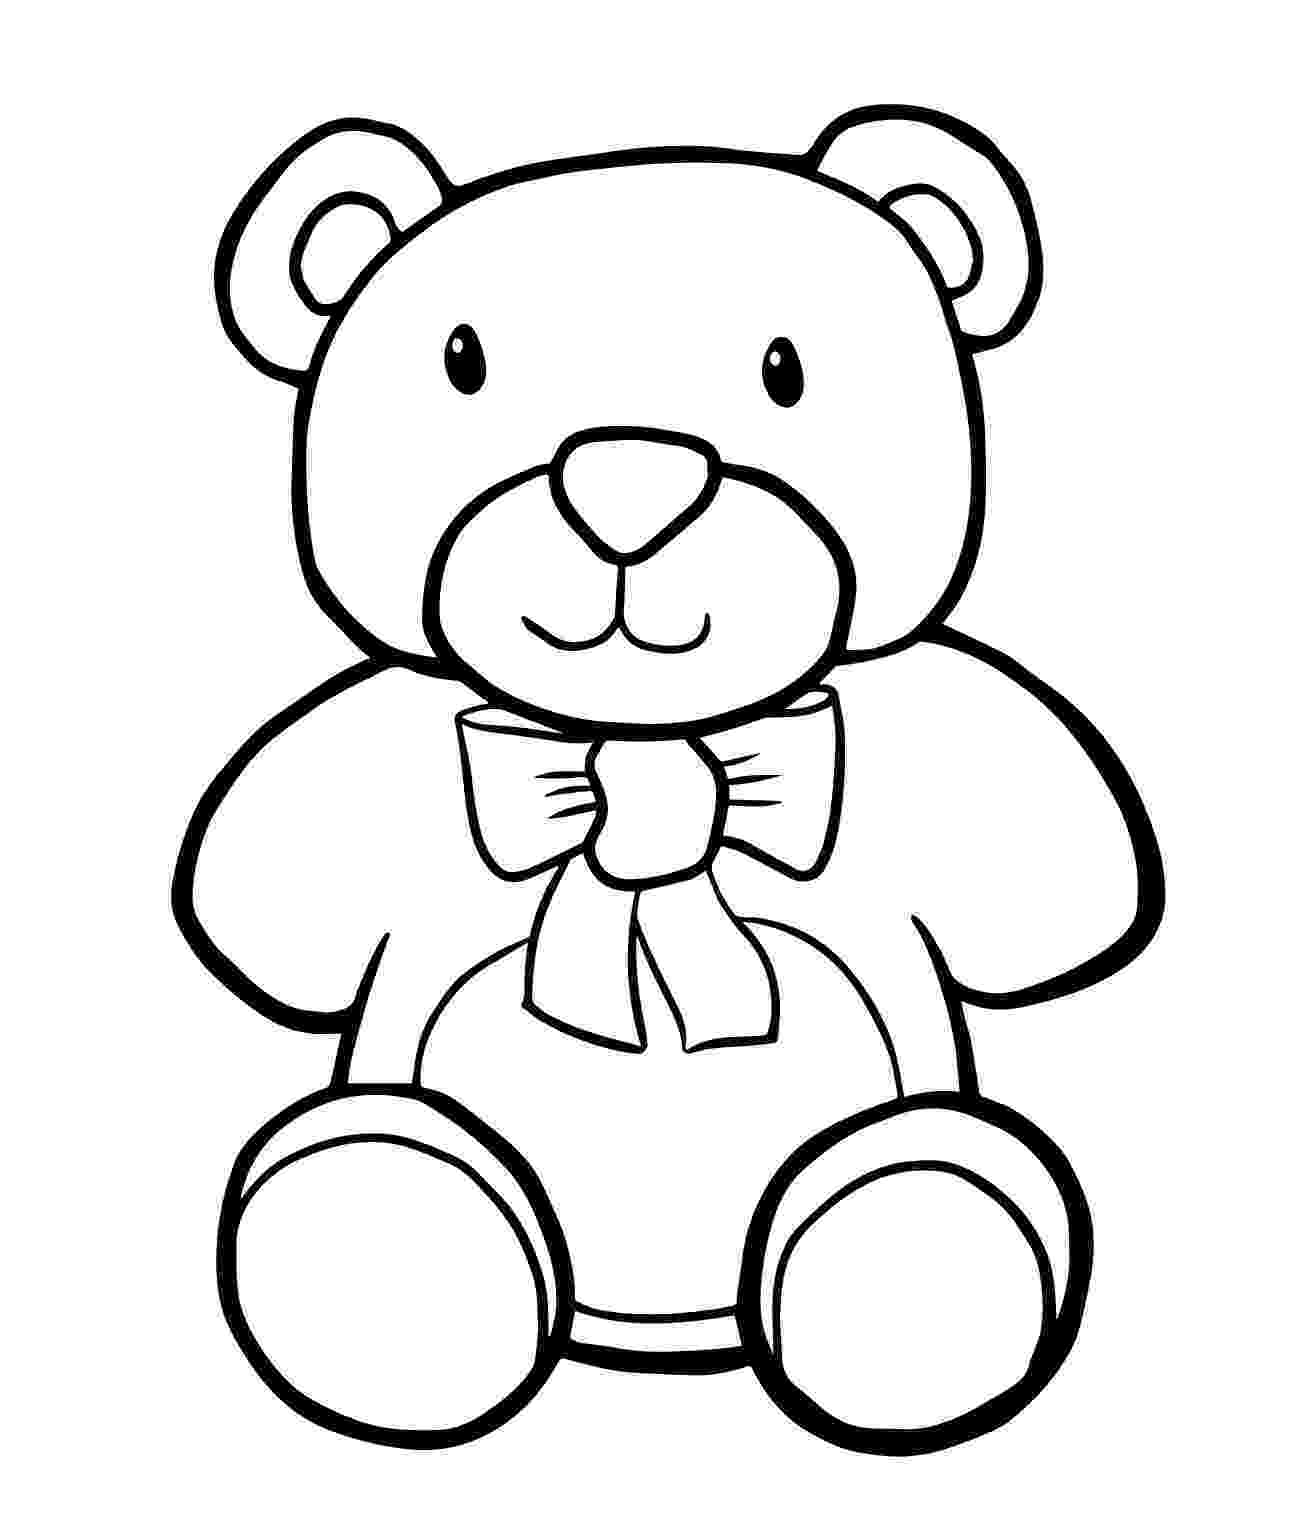 colouring pages of teddy bear printable teddy bear coloring pages for kids cool2bkids teddy of bear pages colouring